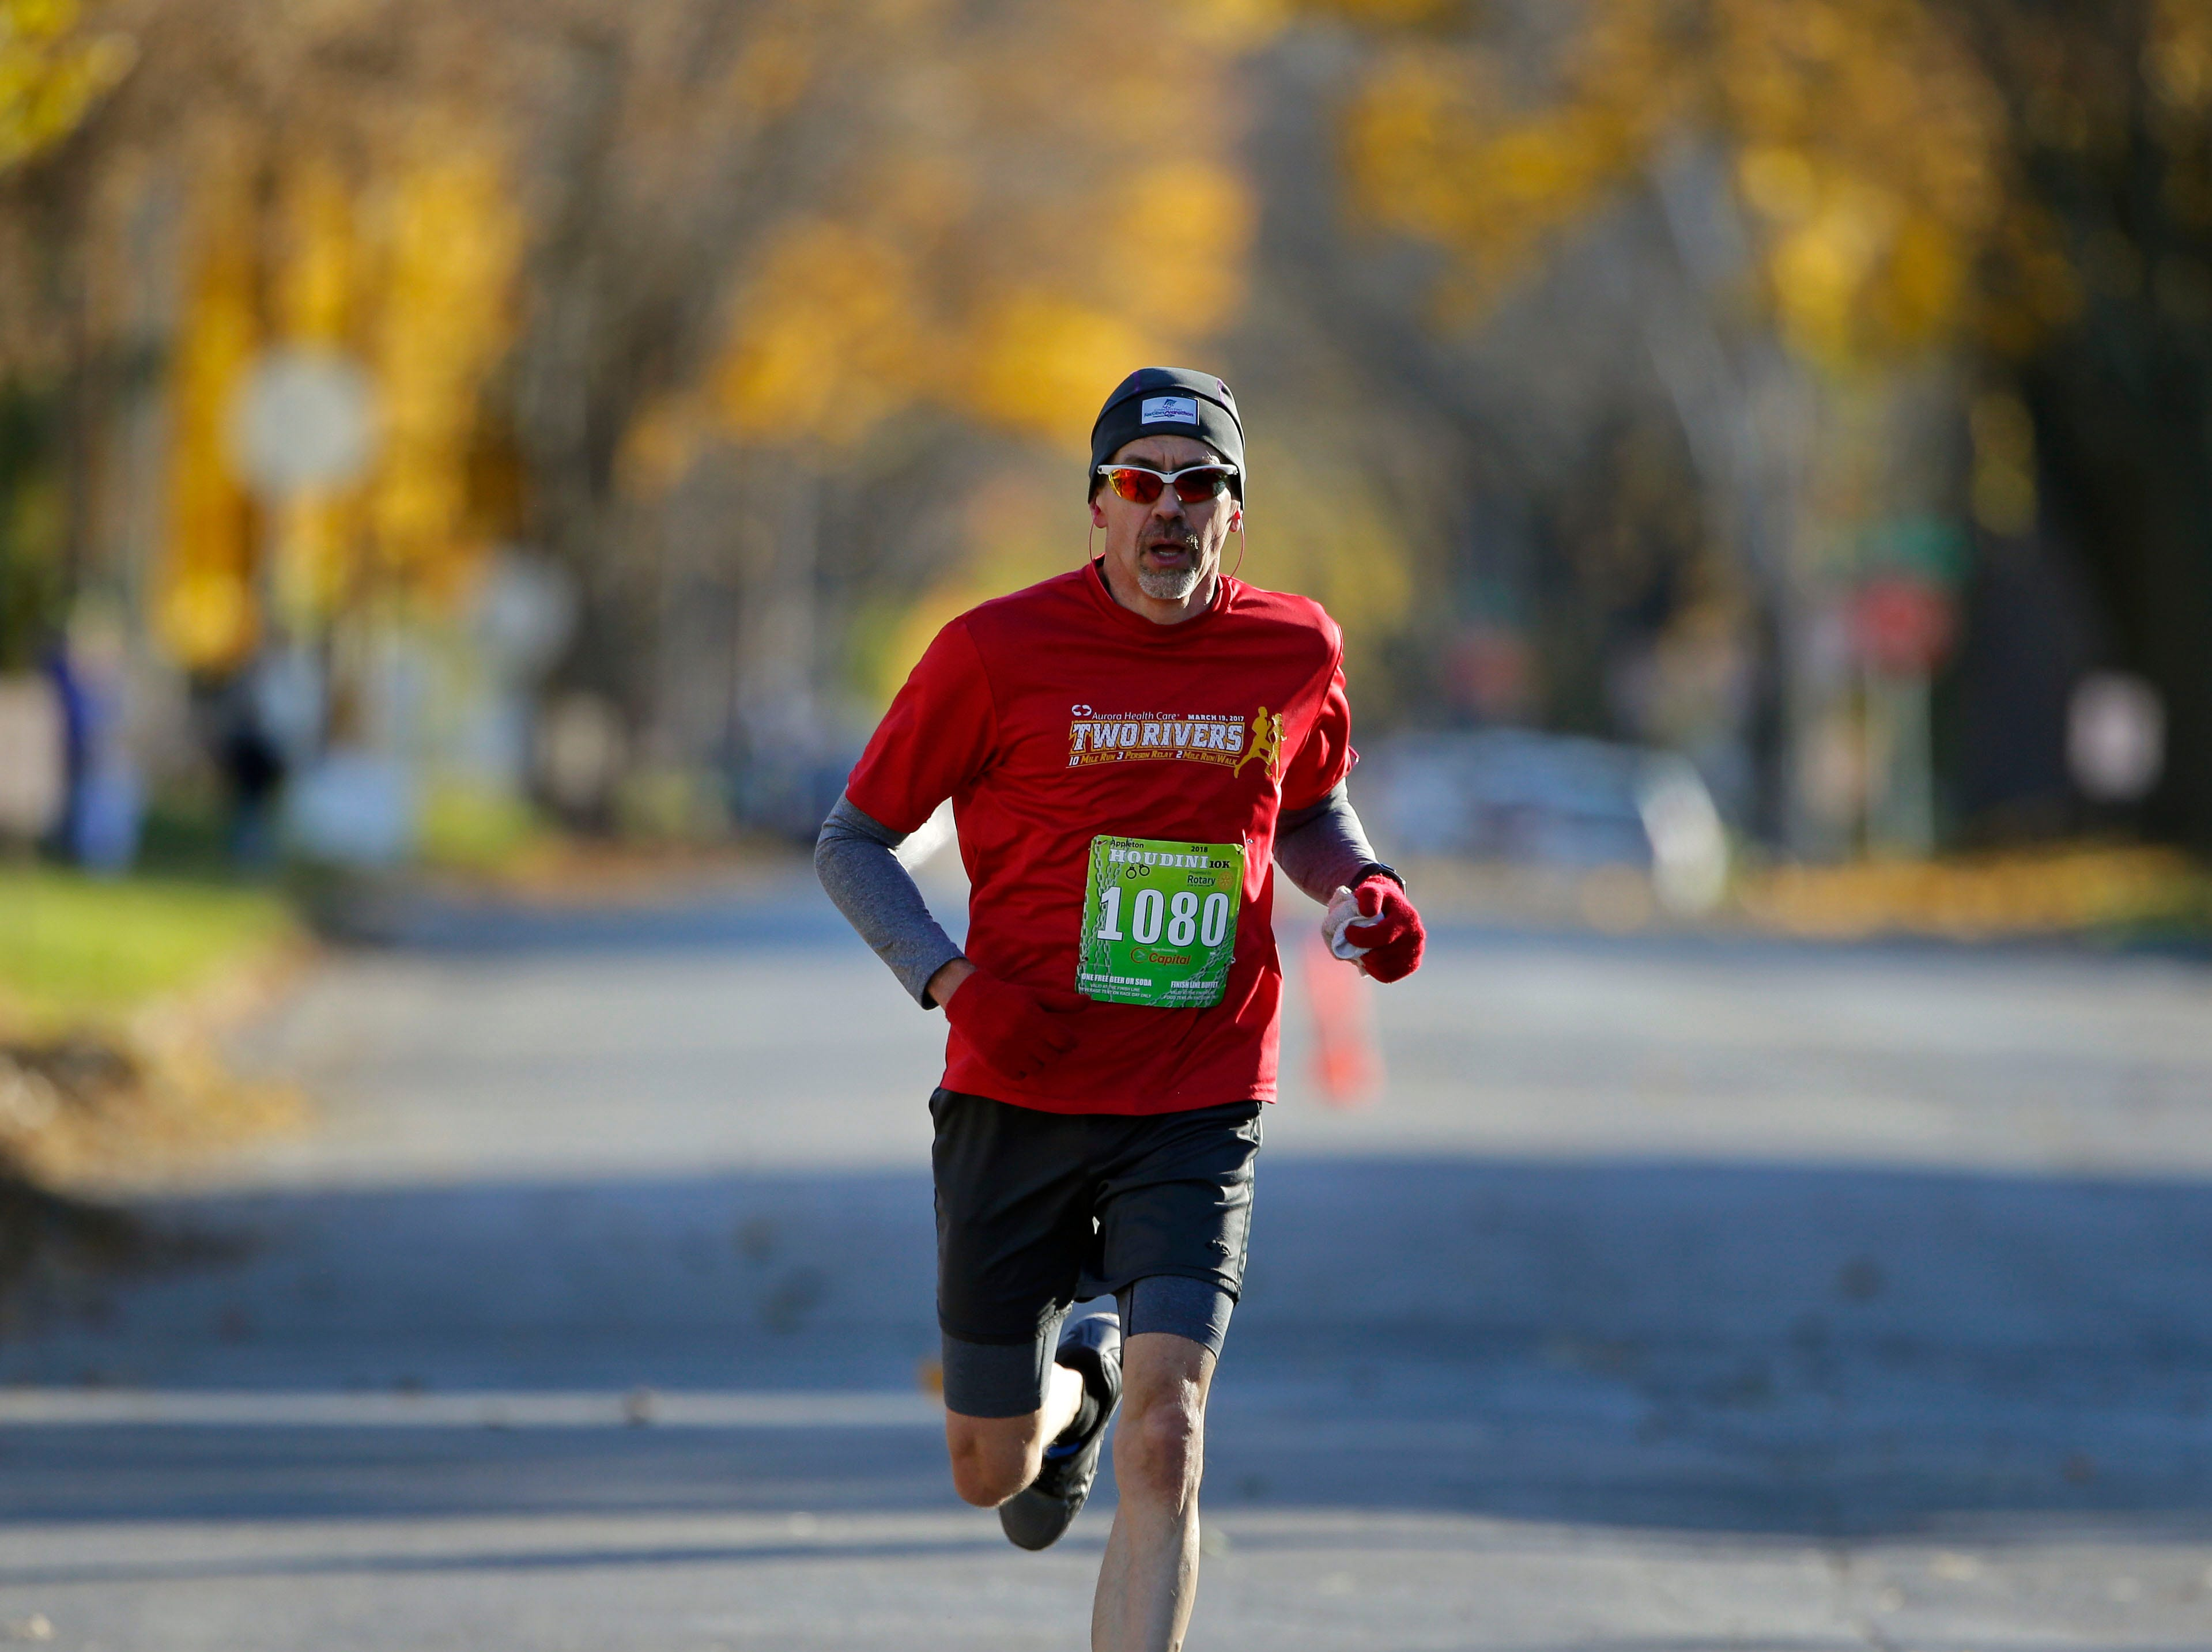 Paul Schaef nears the finish as the 4th annual Appleton Houdini 10K takes place Saturday, November 3, 2018, in Appleton, Wis.Ron Page/USA TODAY NETWORK-Wisconsin